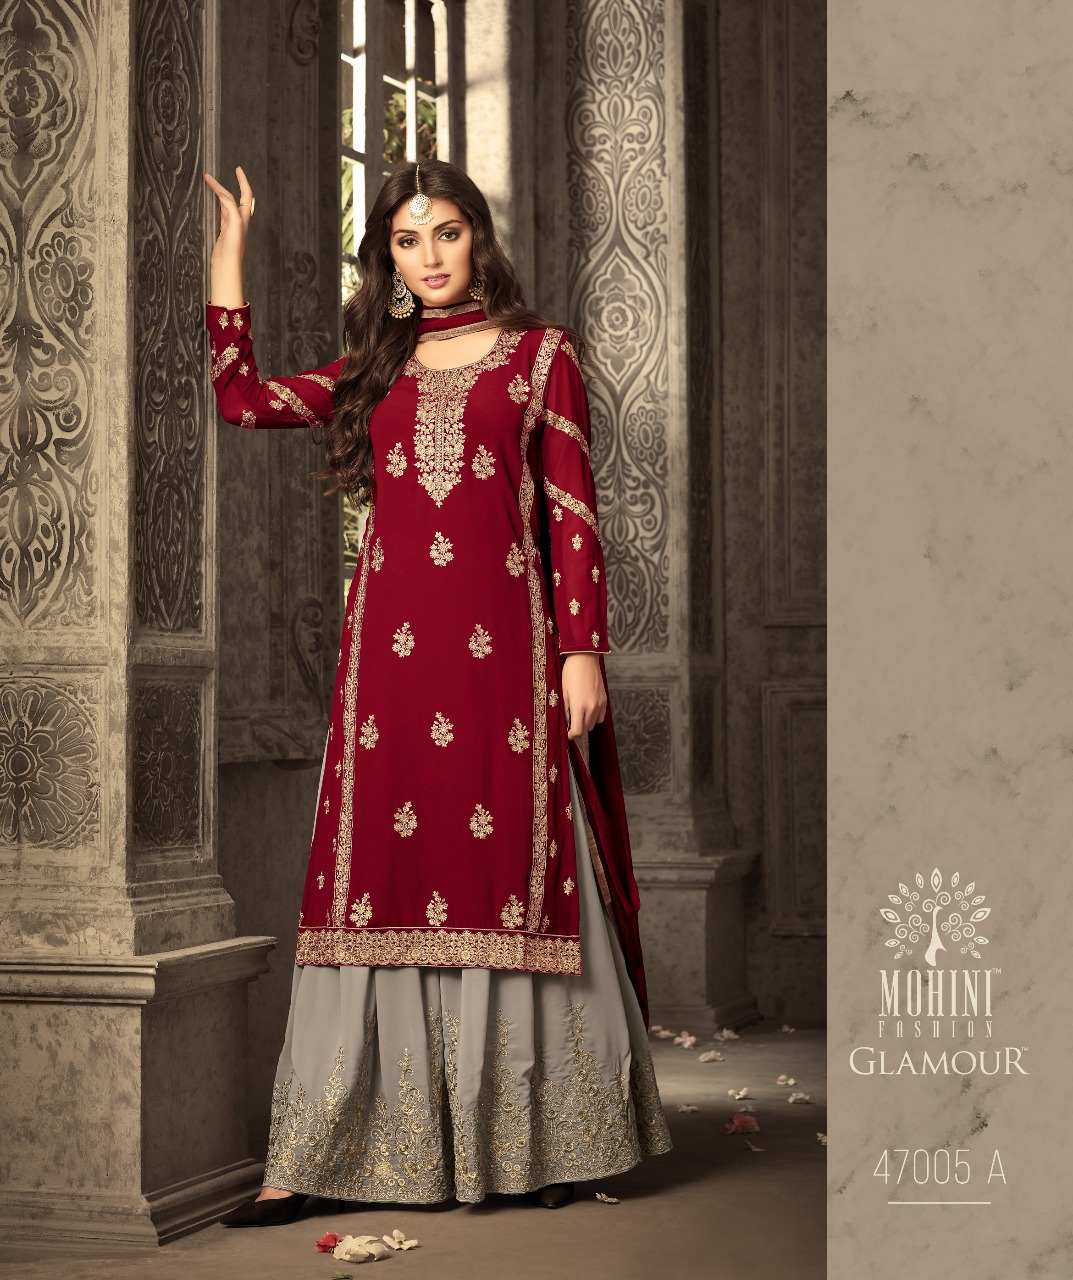 815bae235b GLAMOUR HEAVY BUTI EMBROIDERED WITH FANCY EMBROIDERED LACE PATTERN SLEEVES  TOP WITH DESIGNER EMBROIDERED BOTTOM SHARARA AND LACE BORDERED DUPATTA  WHOLESALE ...